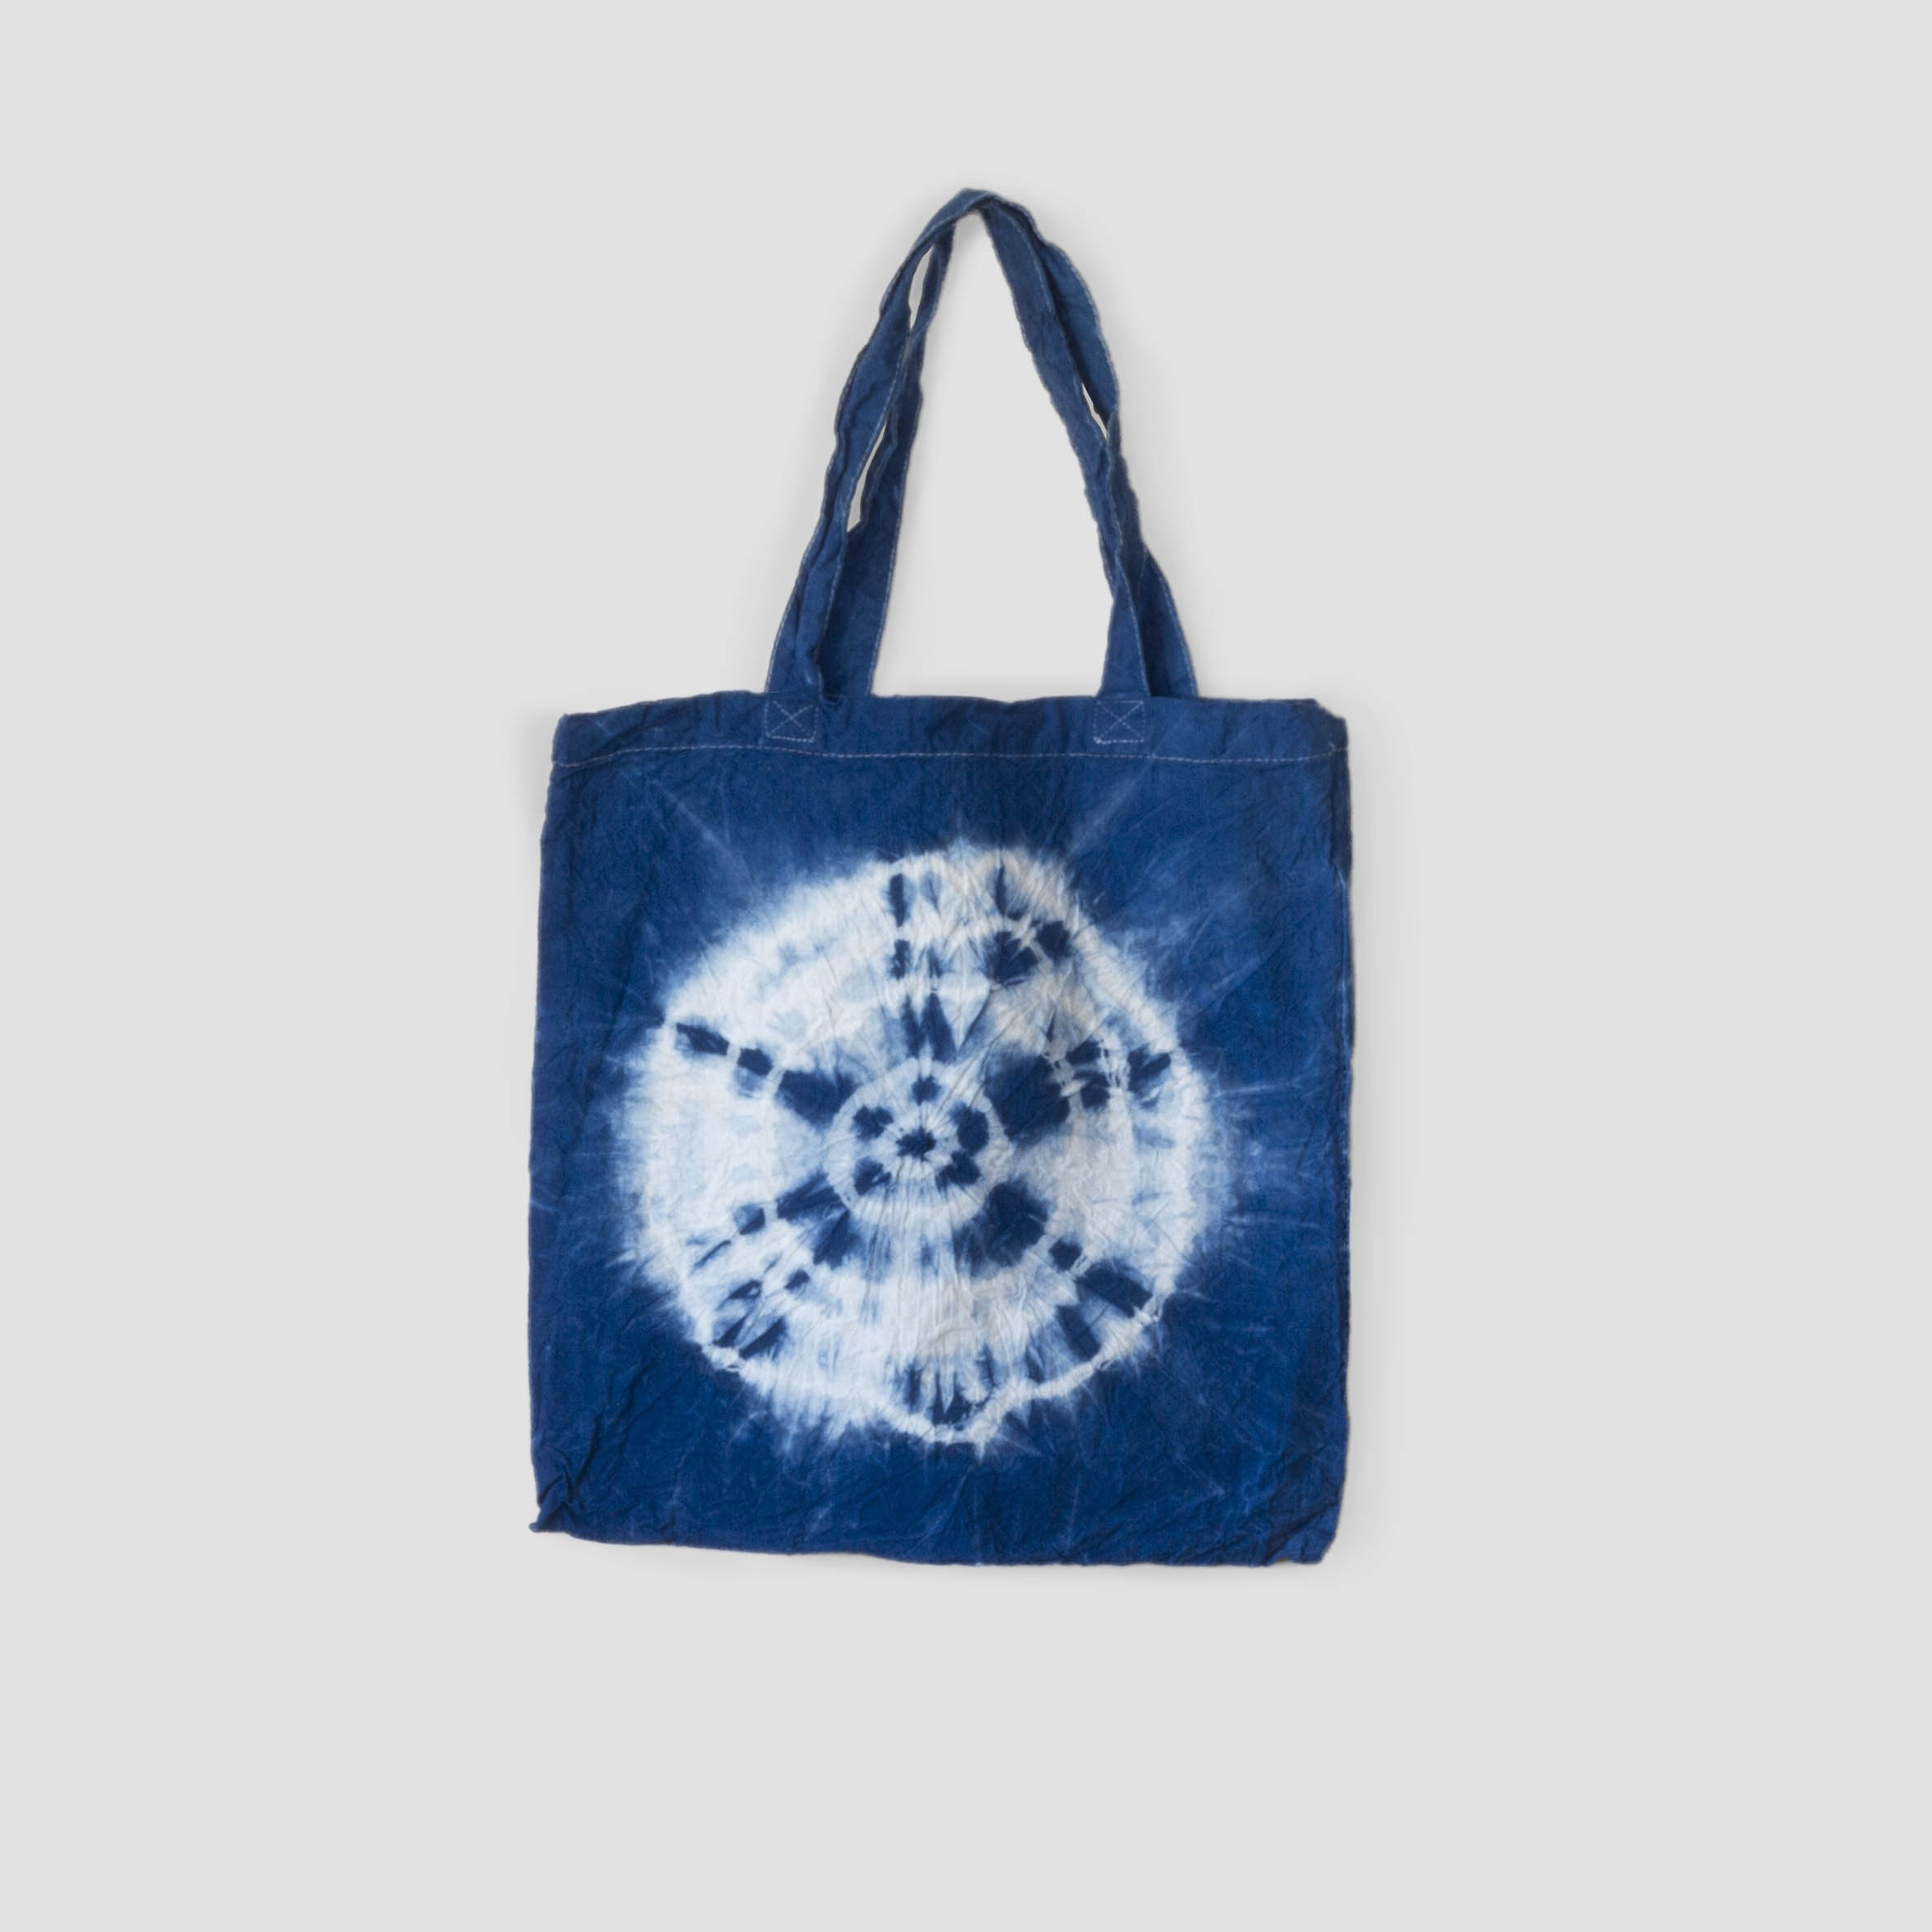 Indigo tote bag full moon